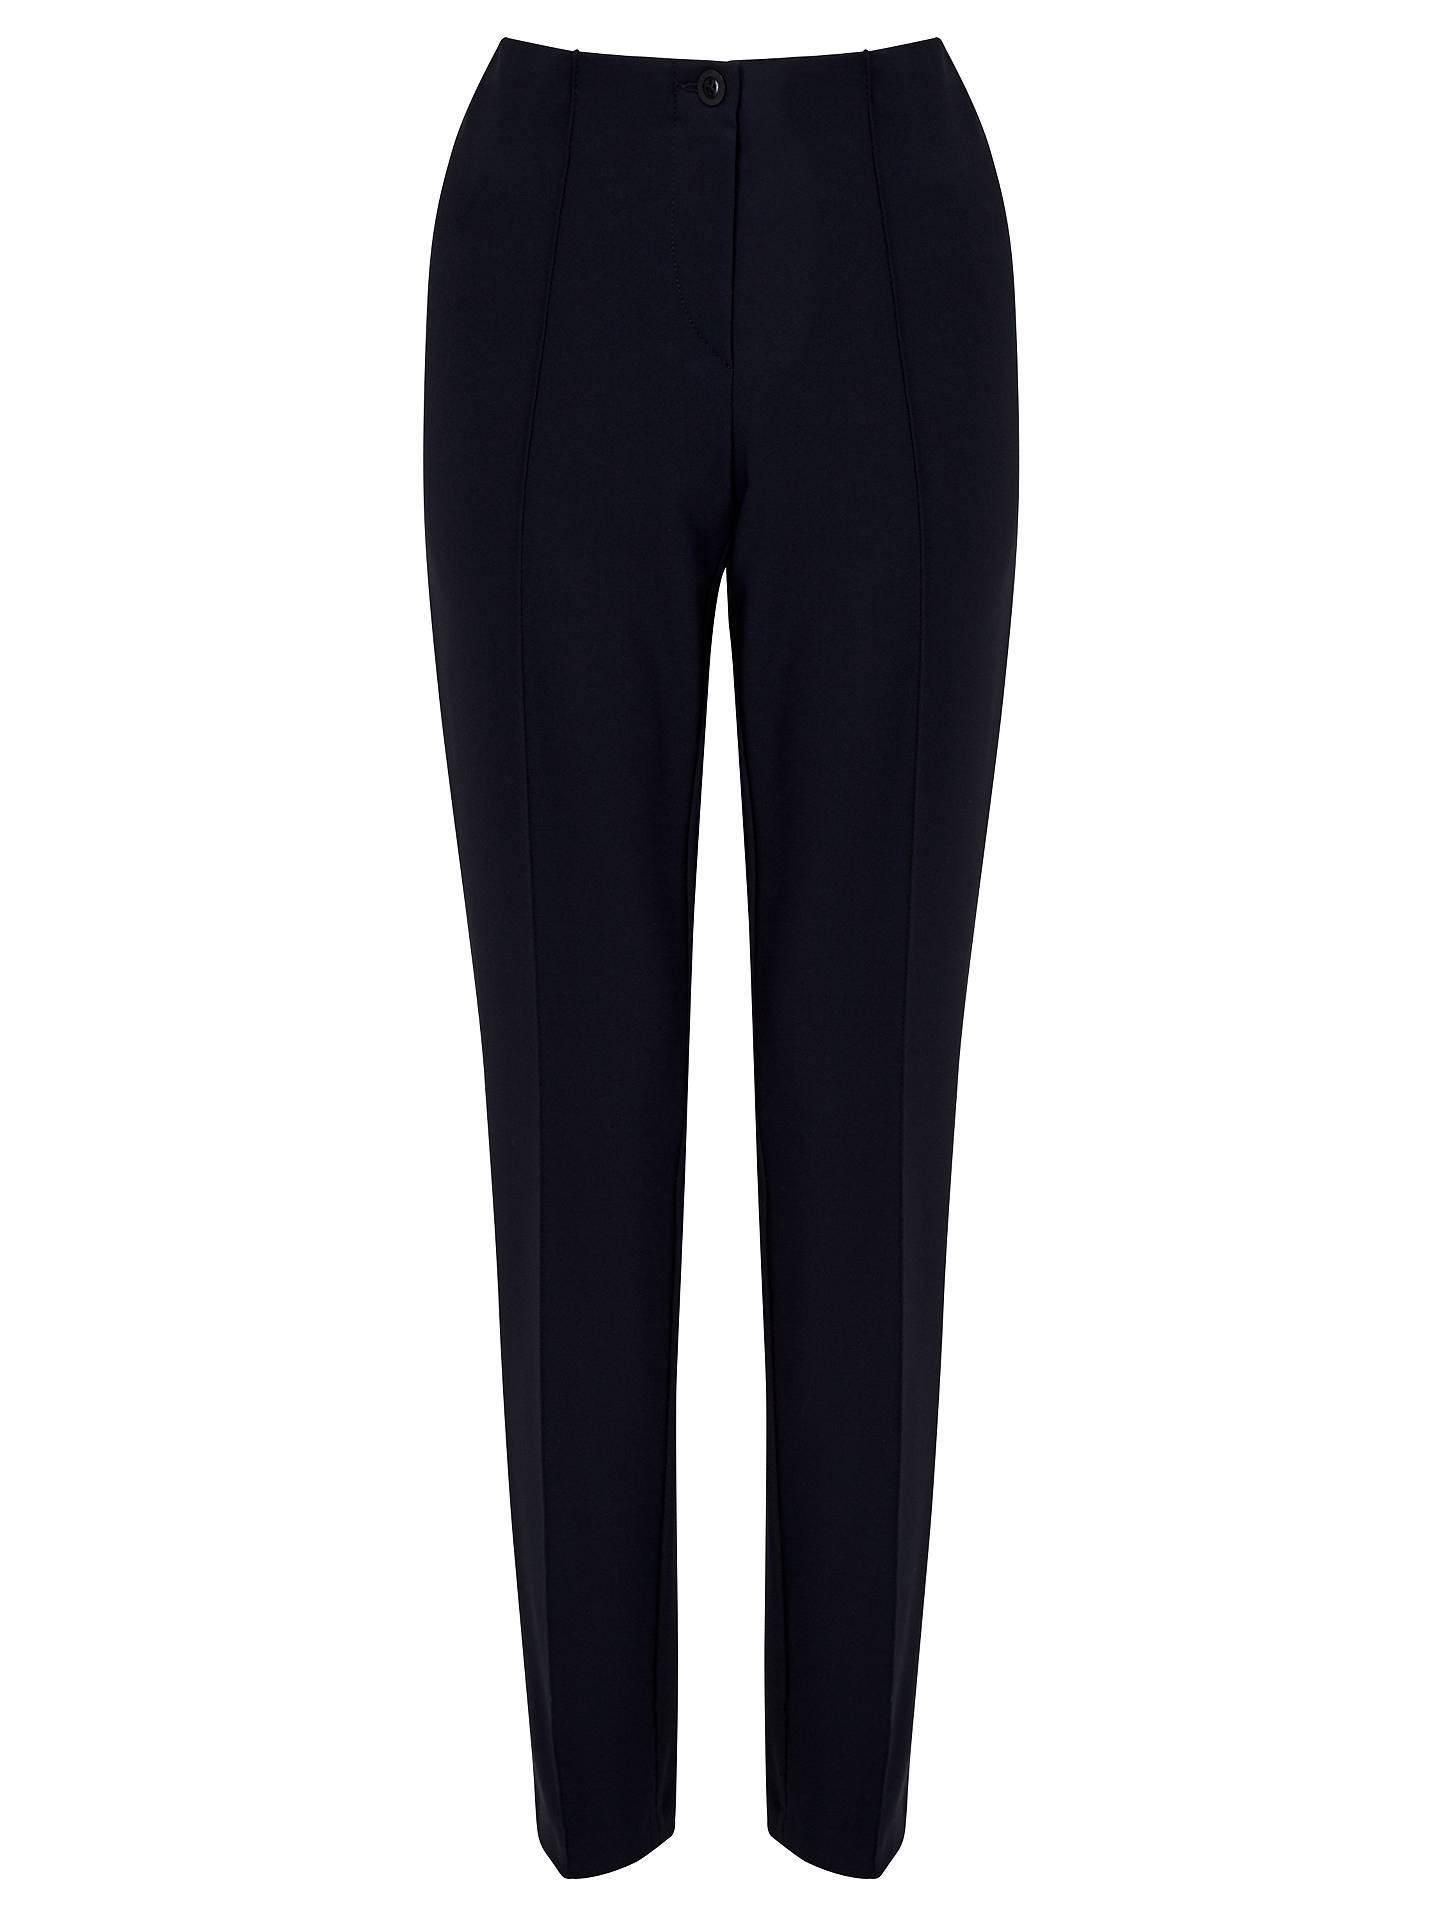 BuyGardeur Zene1 Stretch Slim Fit Trousers, Navy, 18 Online at johnlewis.com